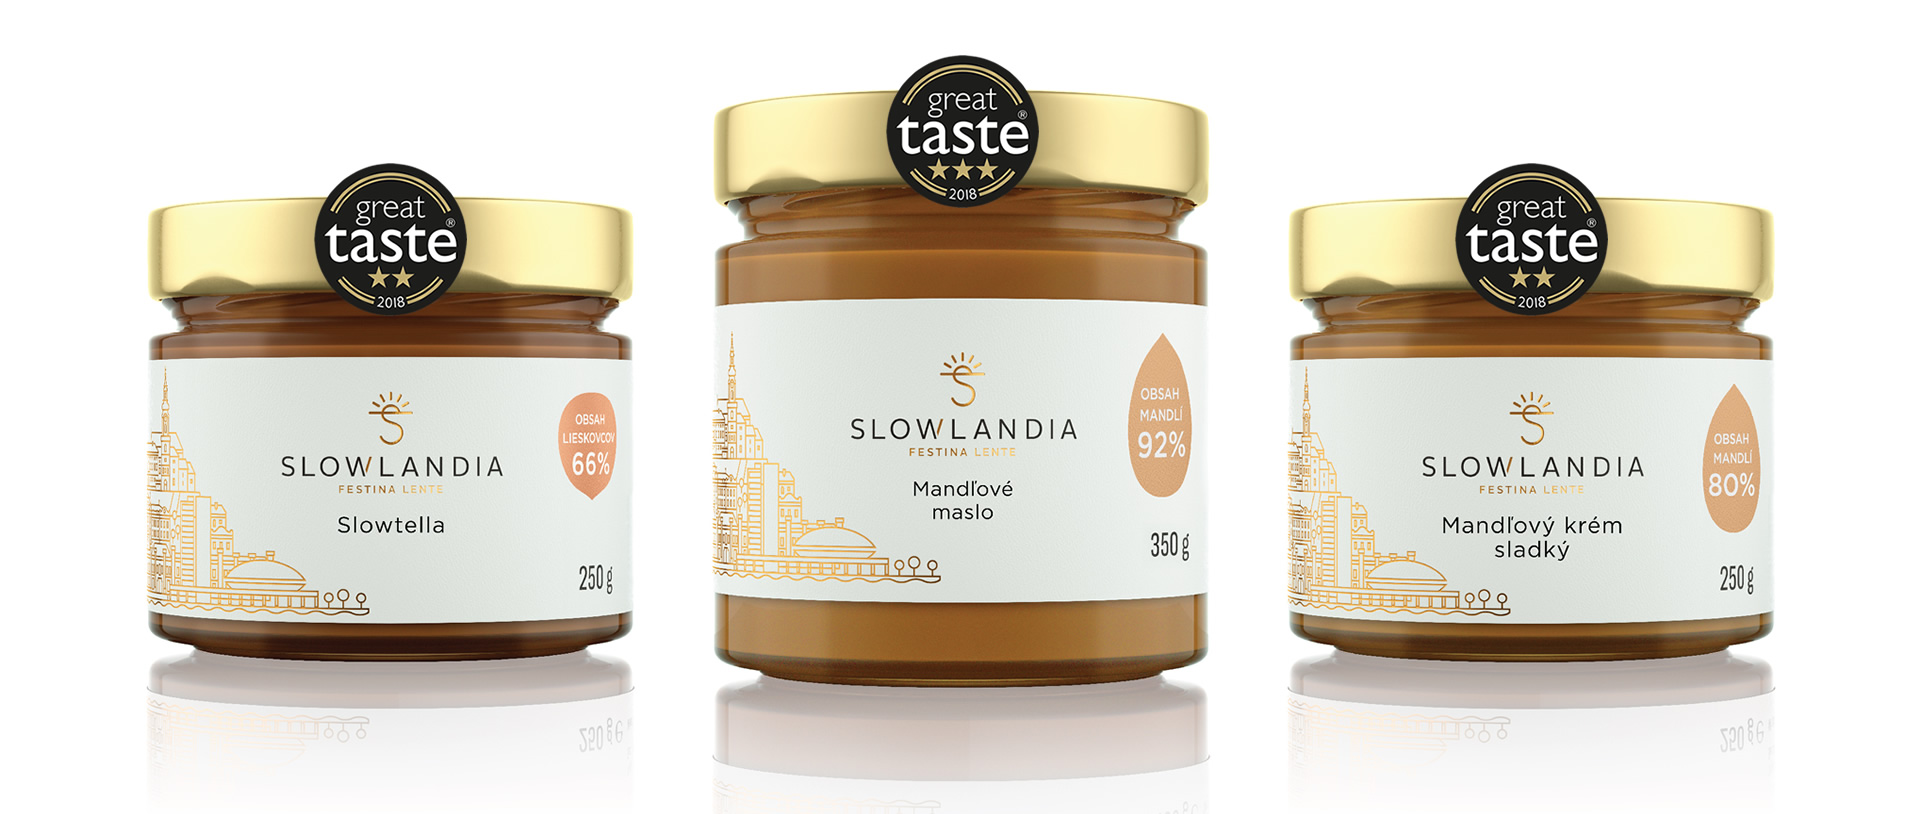 Slowlandia Great Taste – Slowtella_MandloveMaslo_Krem_GreatTaste2018_trio_web_banner_1920x814